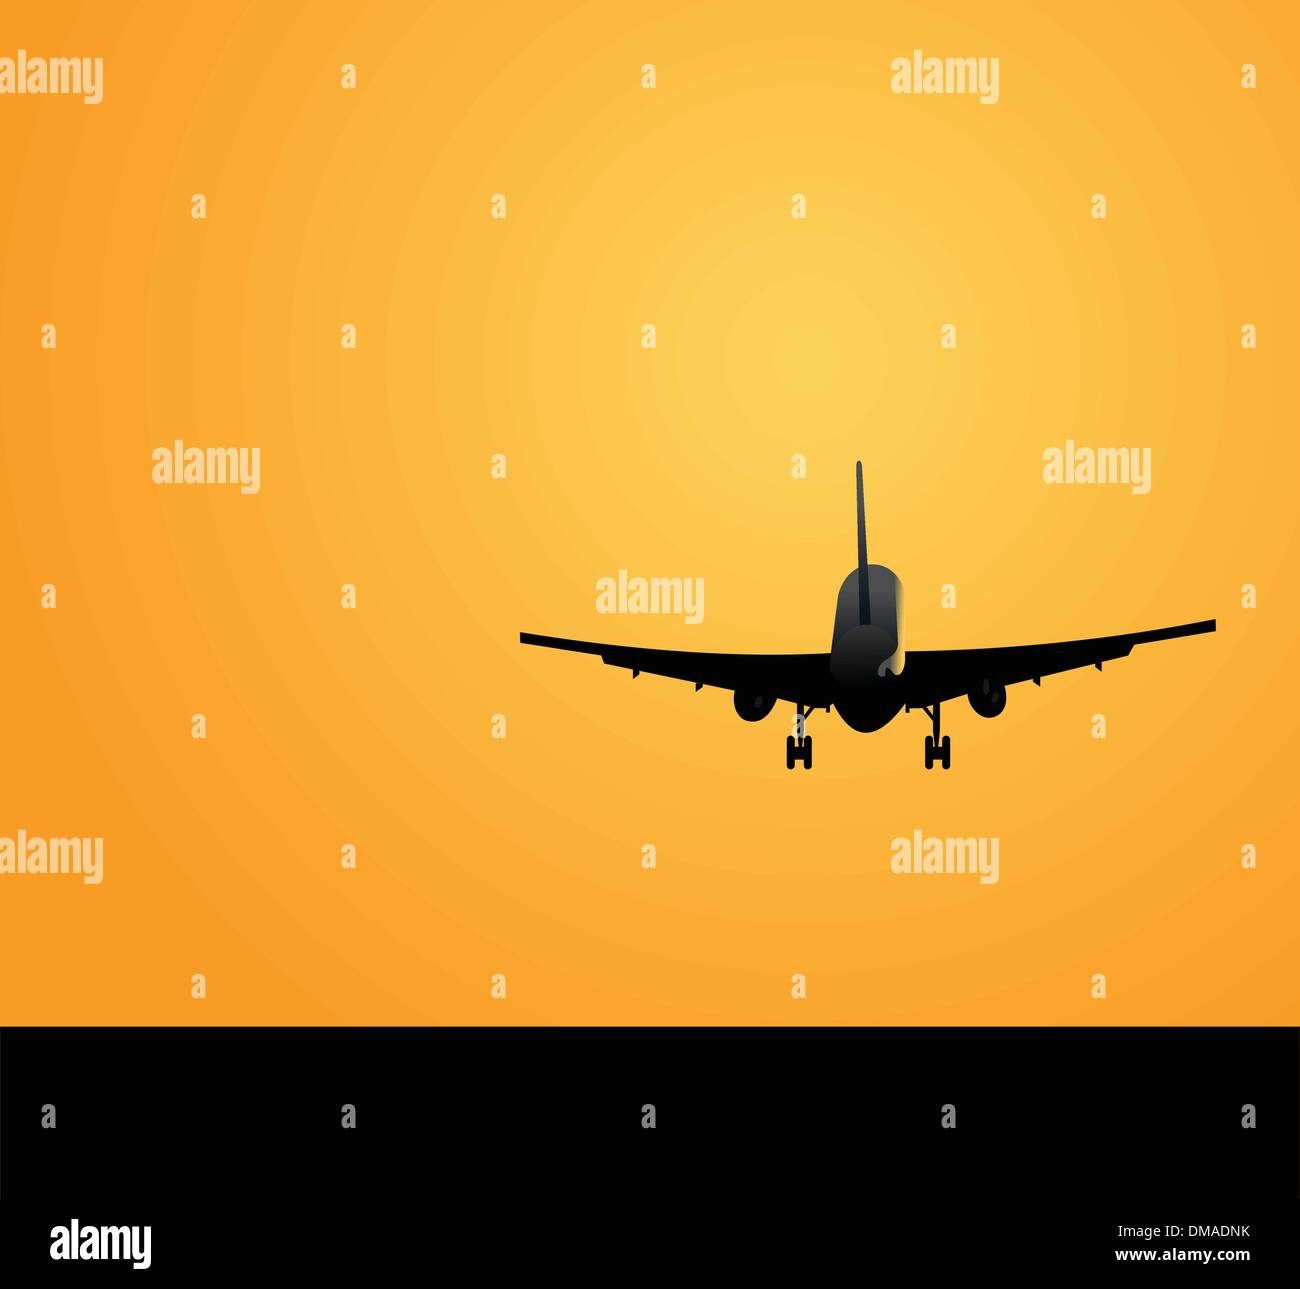 Plane against a decline - Stock Image